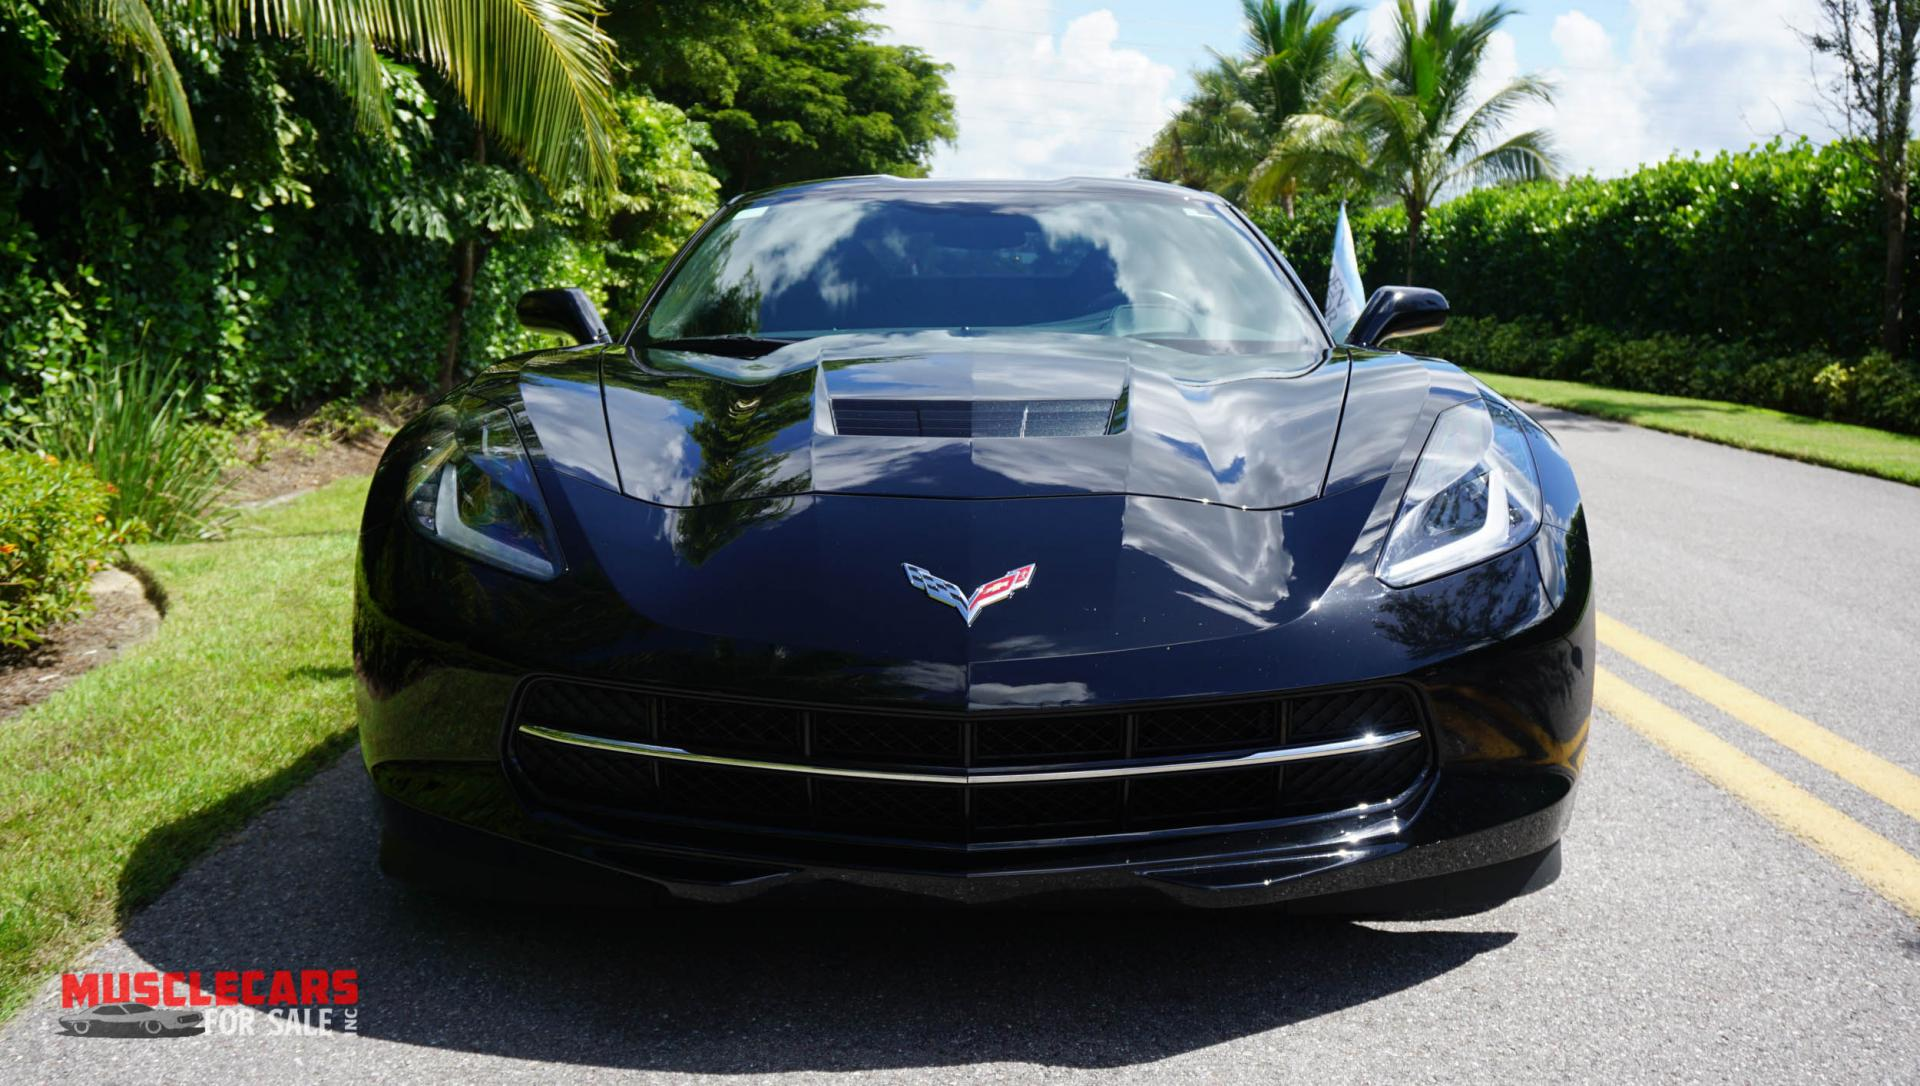 Used 2015 Chevrolet Corvette Stingray for sale Sold at Muscle Cars for Sale Inc. in Fort Myers FL 33912 2